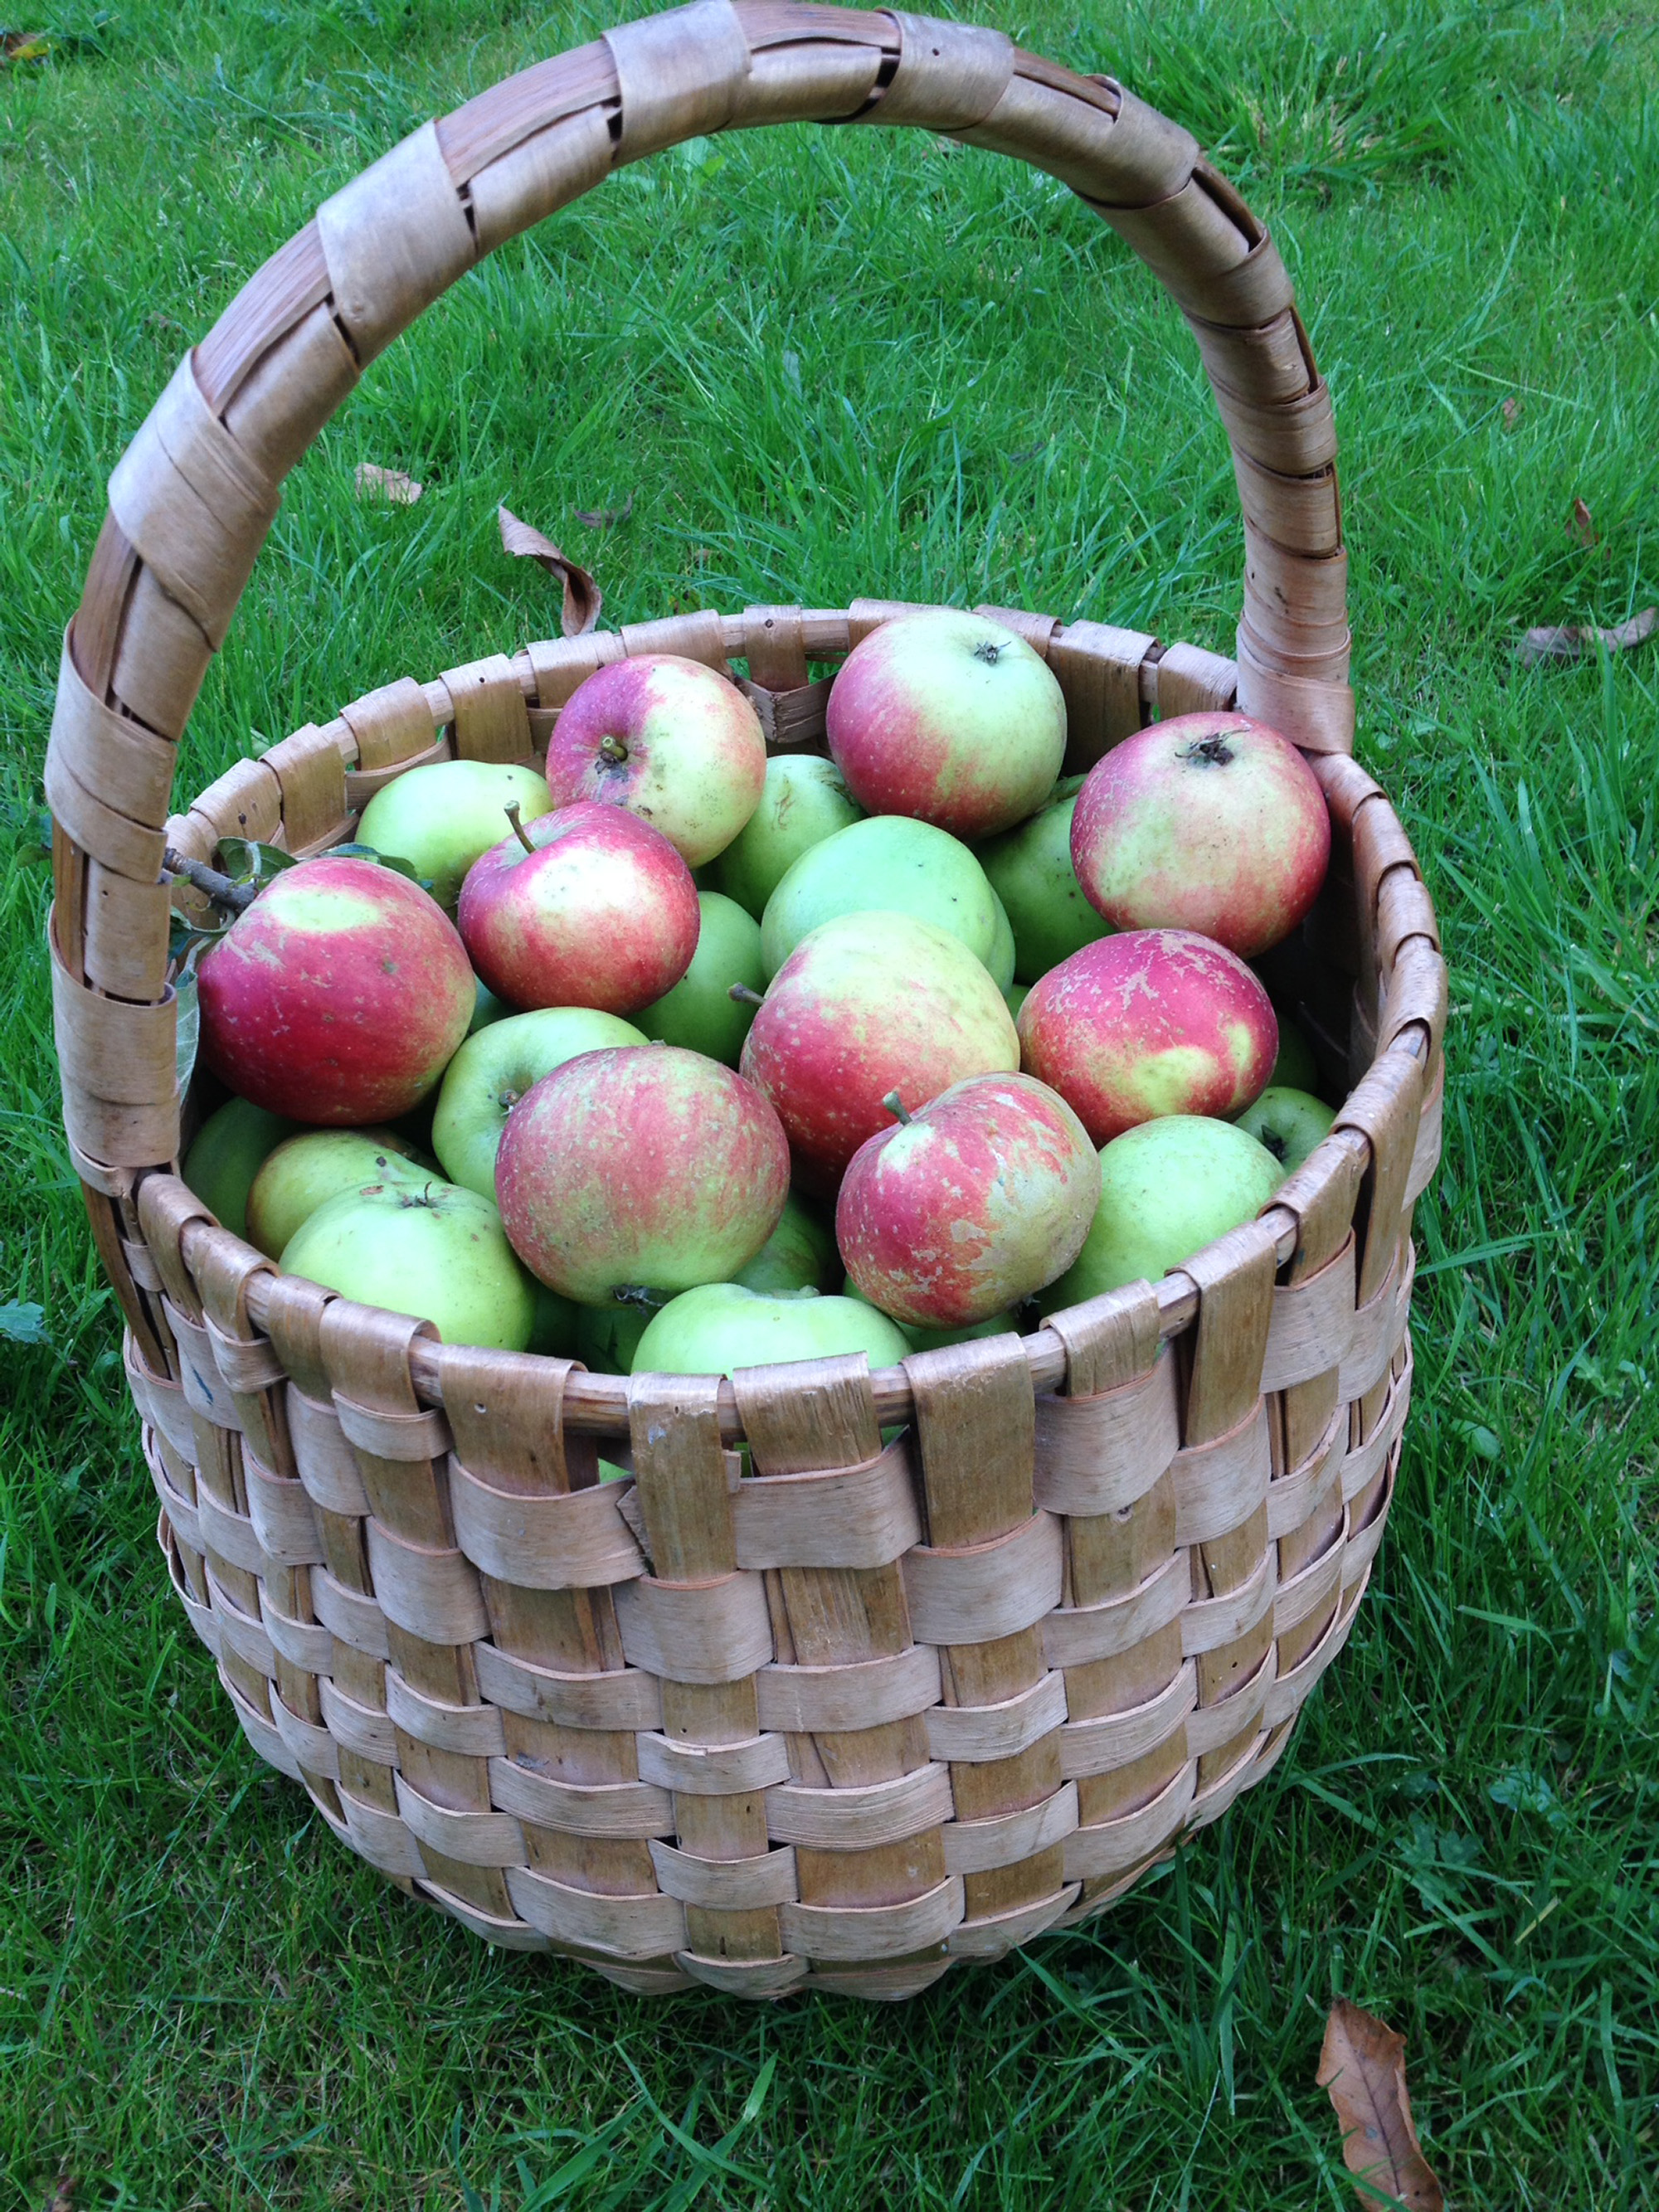 Apples from the Llwyn orchard